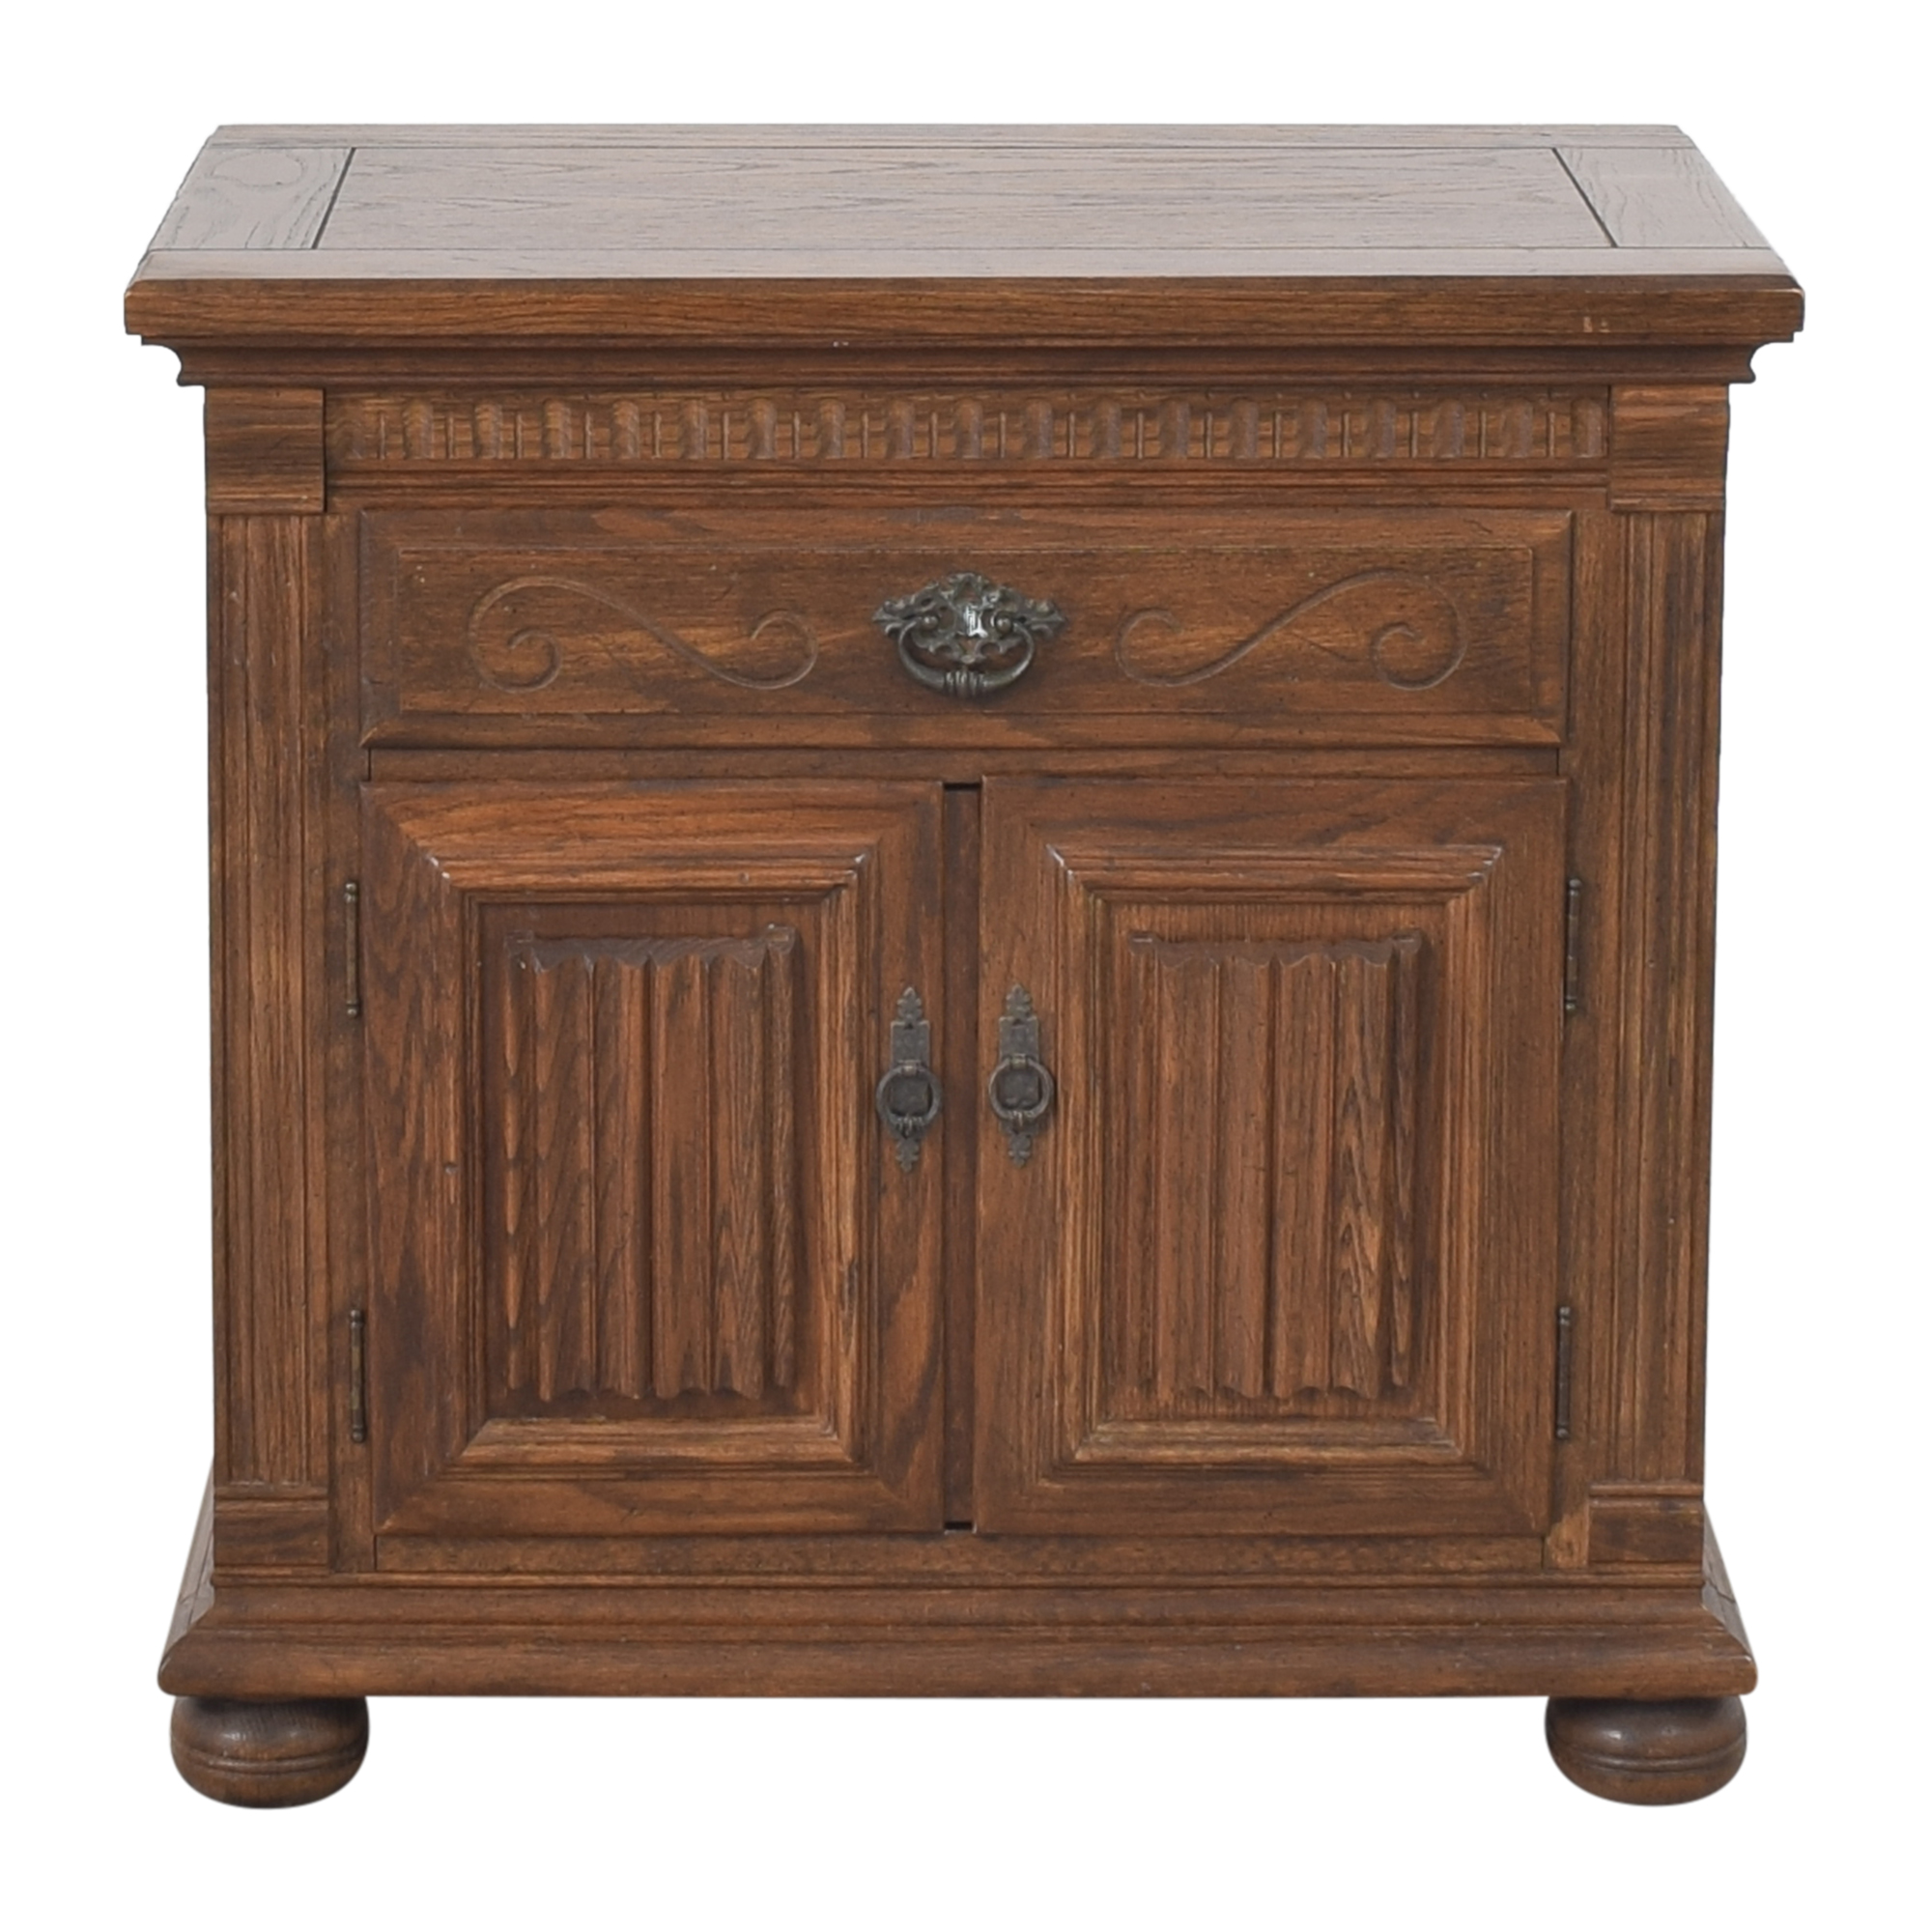 Ethan Allen Ethan Allen Royal Charter Commode Nightstand  brown